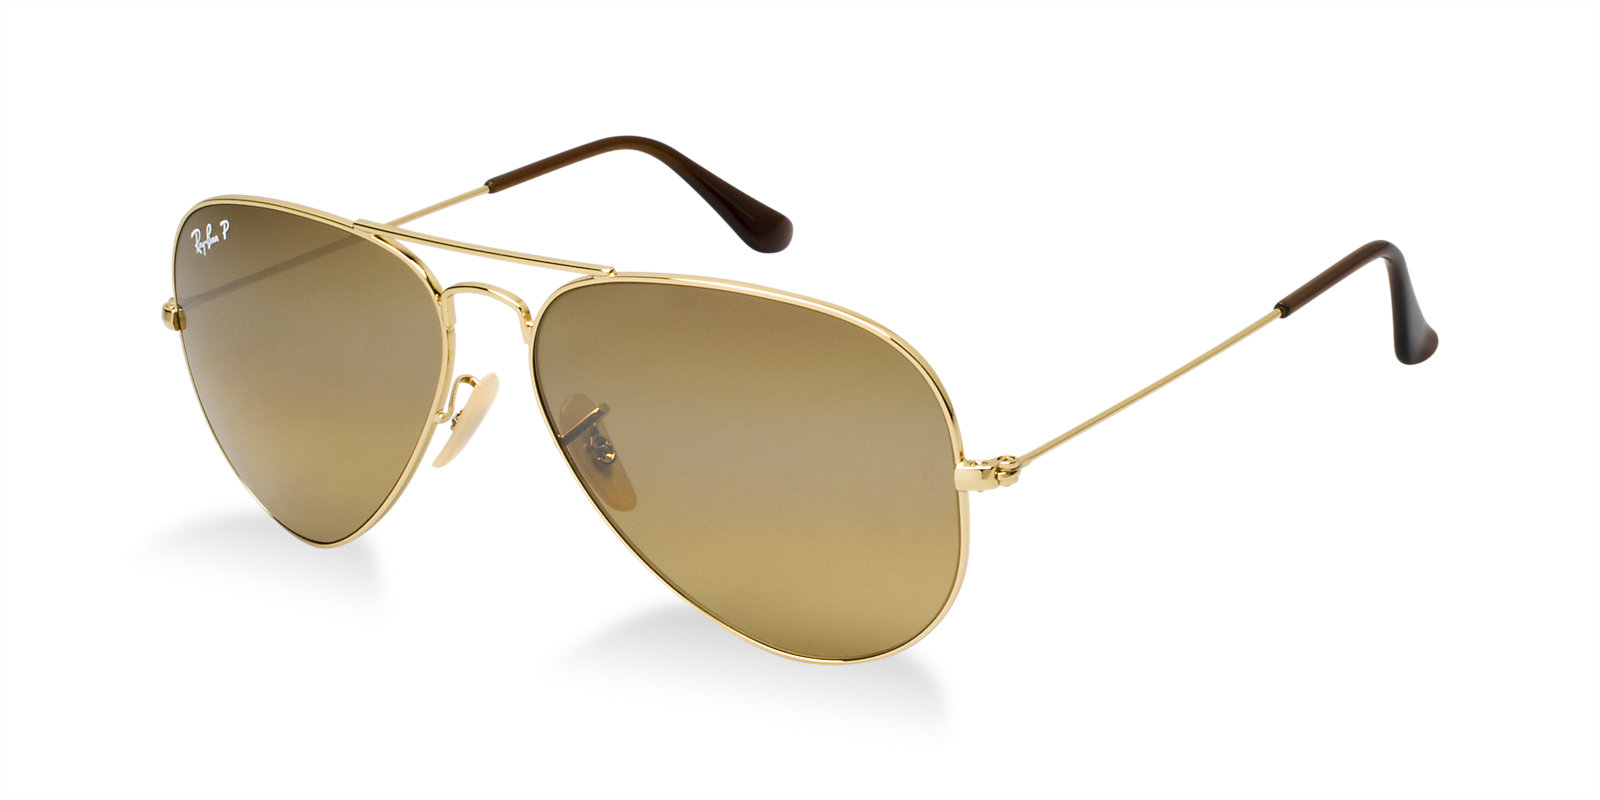 d95a46005d Previous  Next. Previous  Next. RAY-BAN RB3025 001 57 GOLD POLARIZED  AVIATOR SUNGLASSES